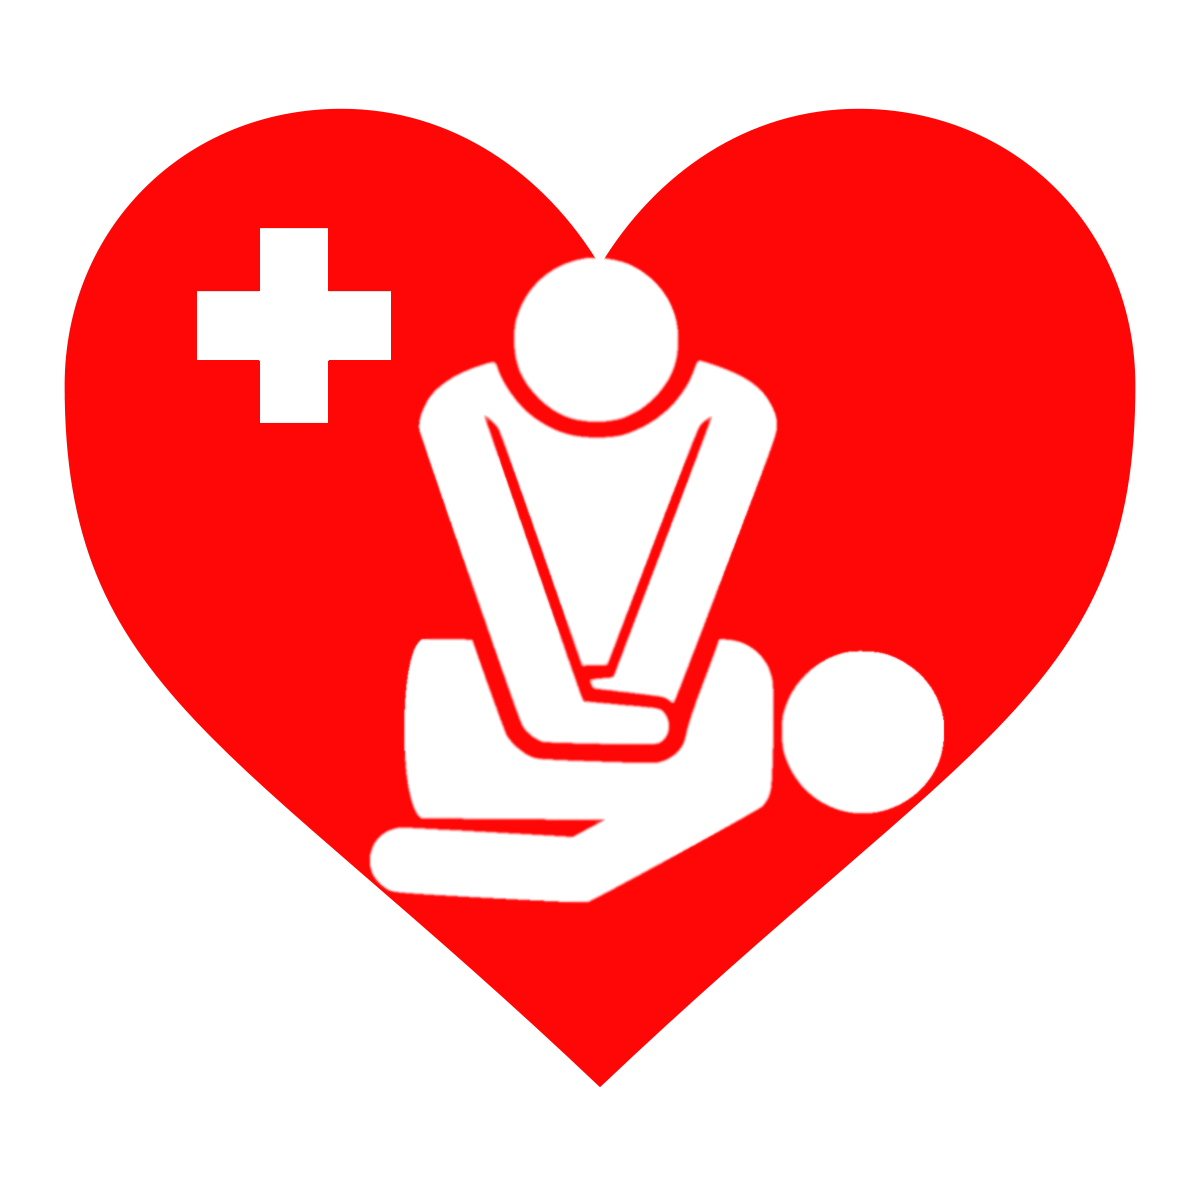 kisspng-first-aid-supplies-cardiopulmonary-resuscitation-b-about-local-cpr-class-5b78088f04d8c3.3289886815345931670199.png